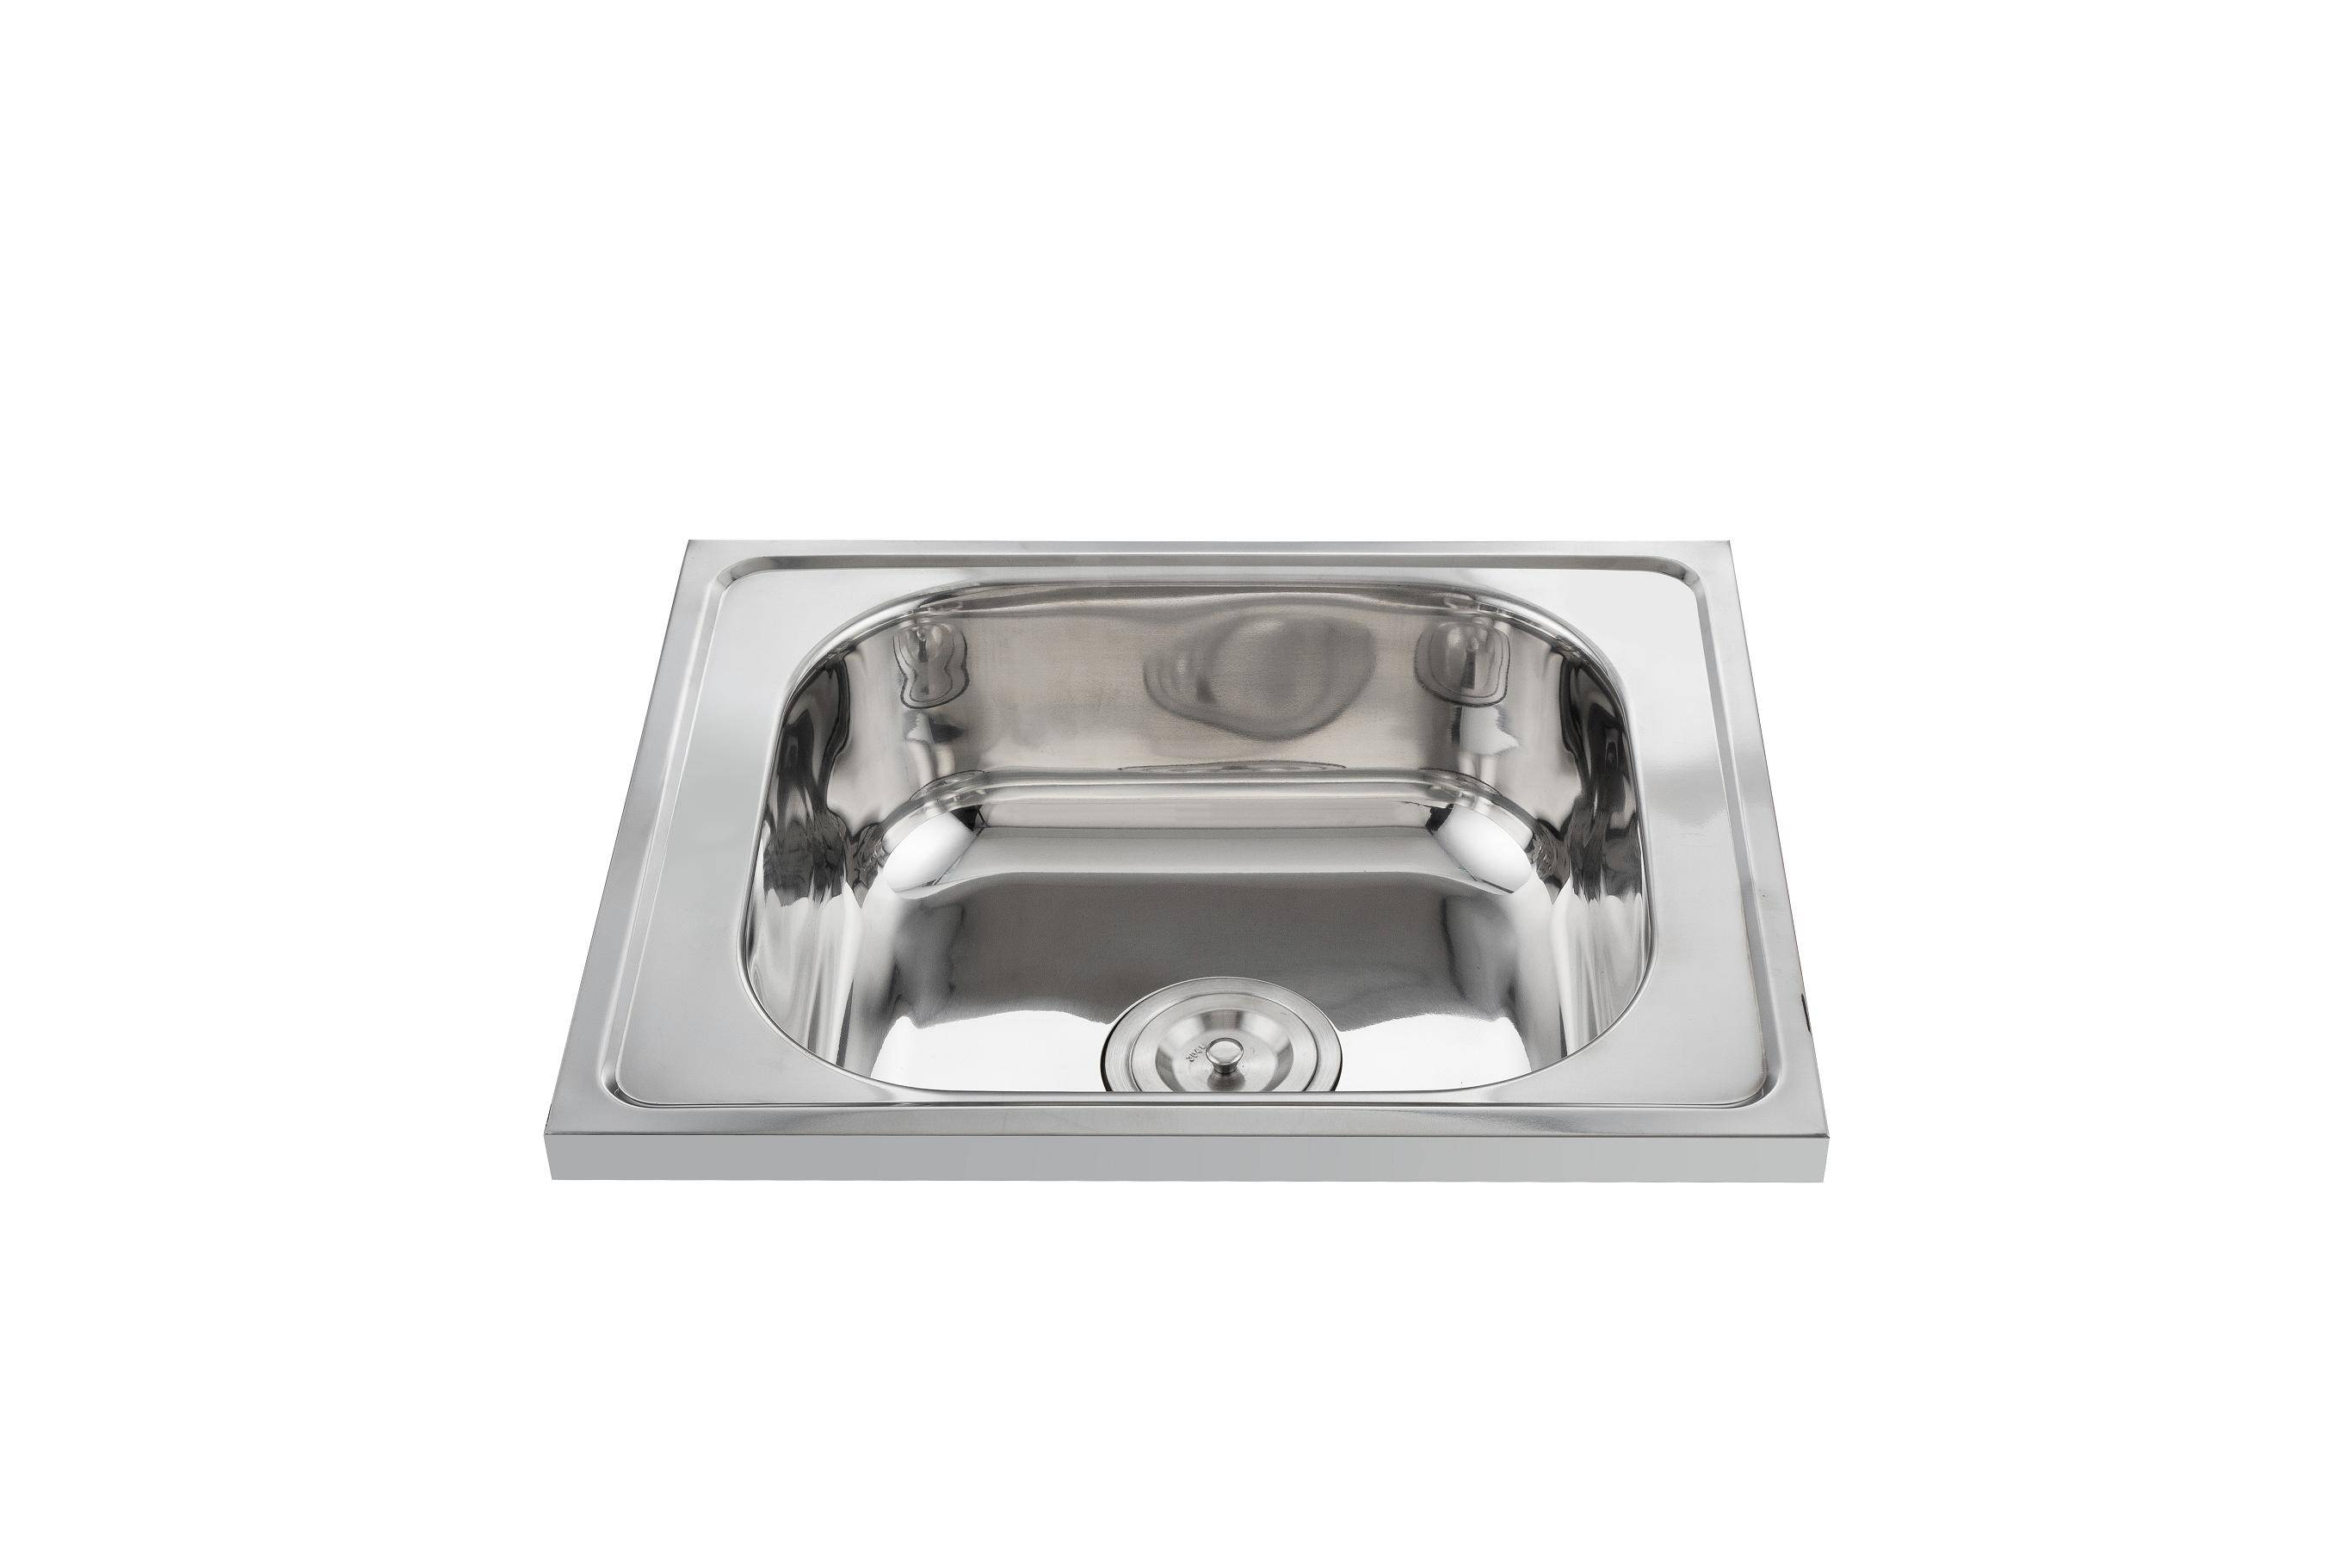 Reliable quality 50*40 rectangular kitchen sink without drainboard